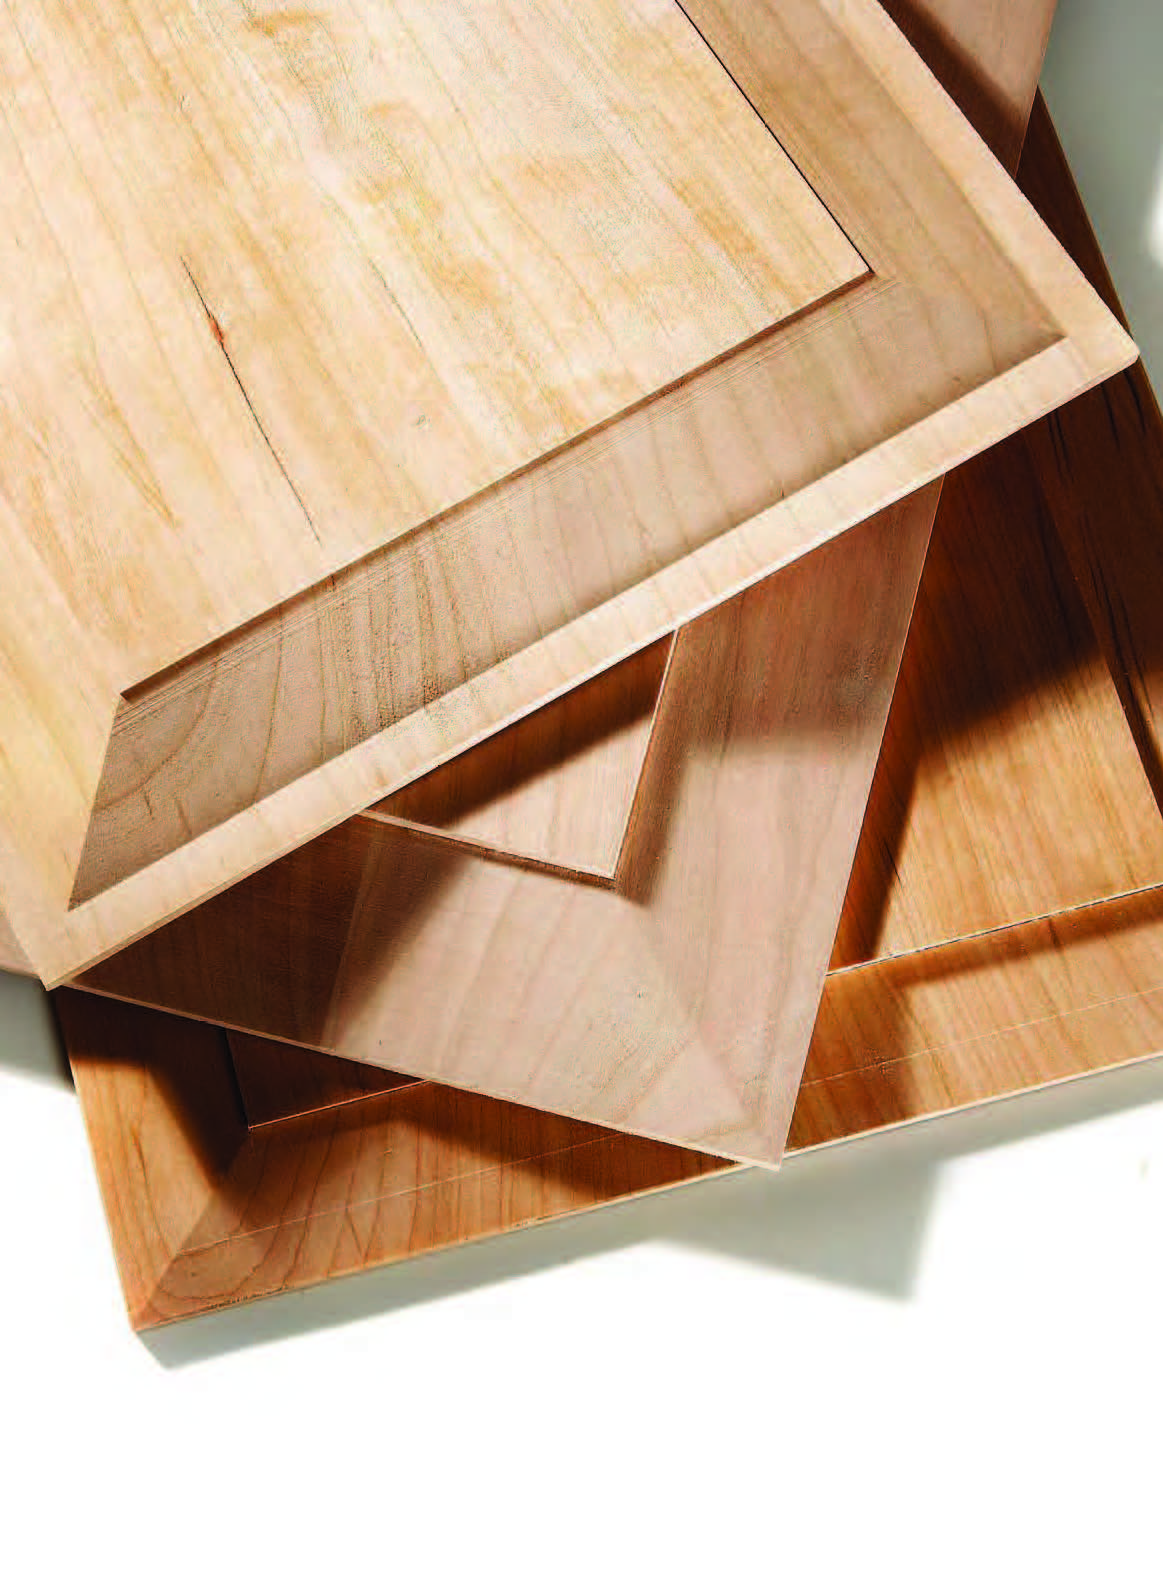 Raised Panel Siding : Ways to make raised panels popular woodworking magazine